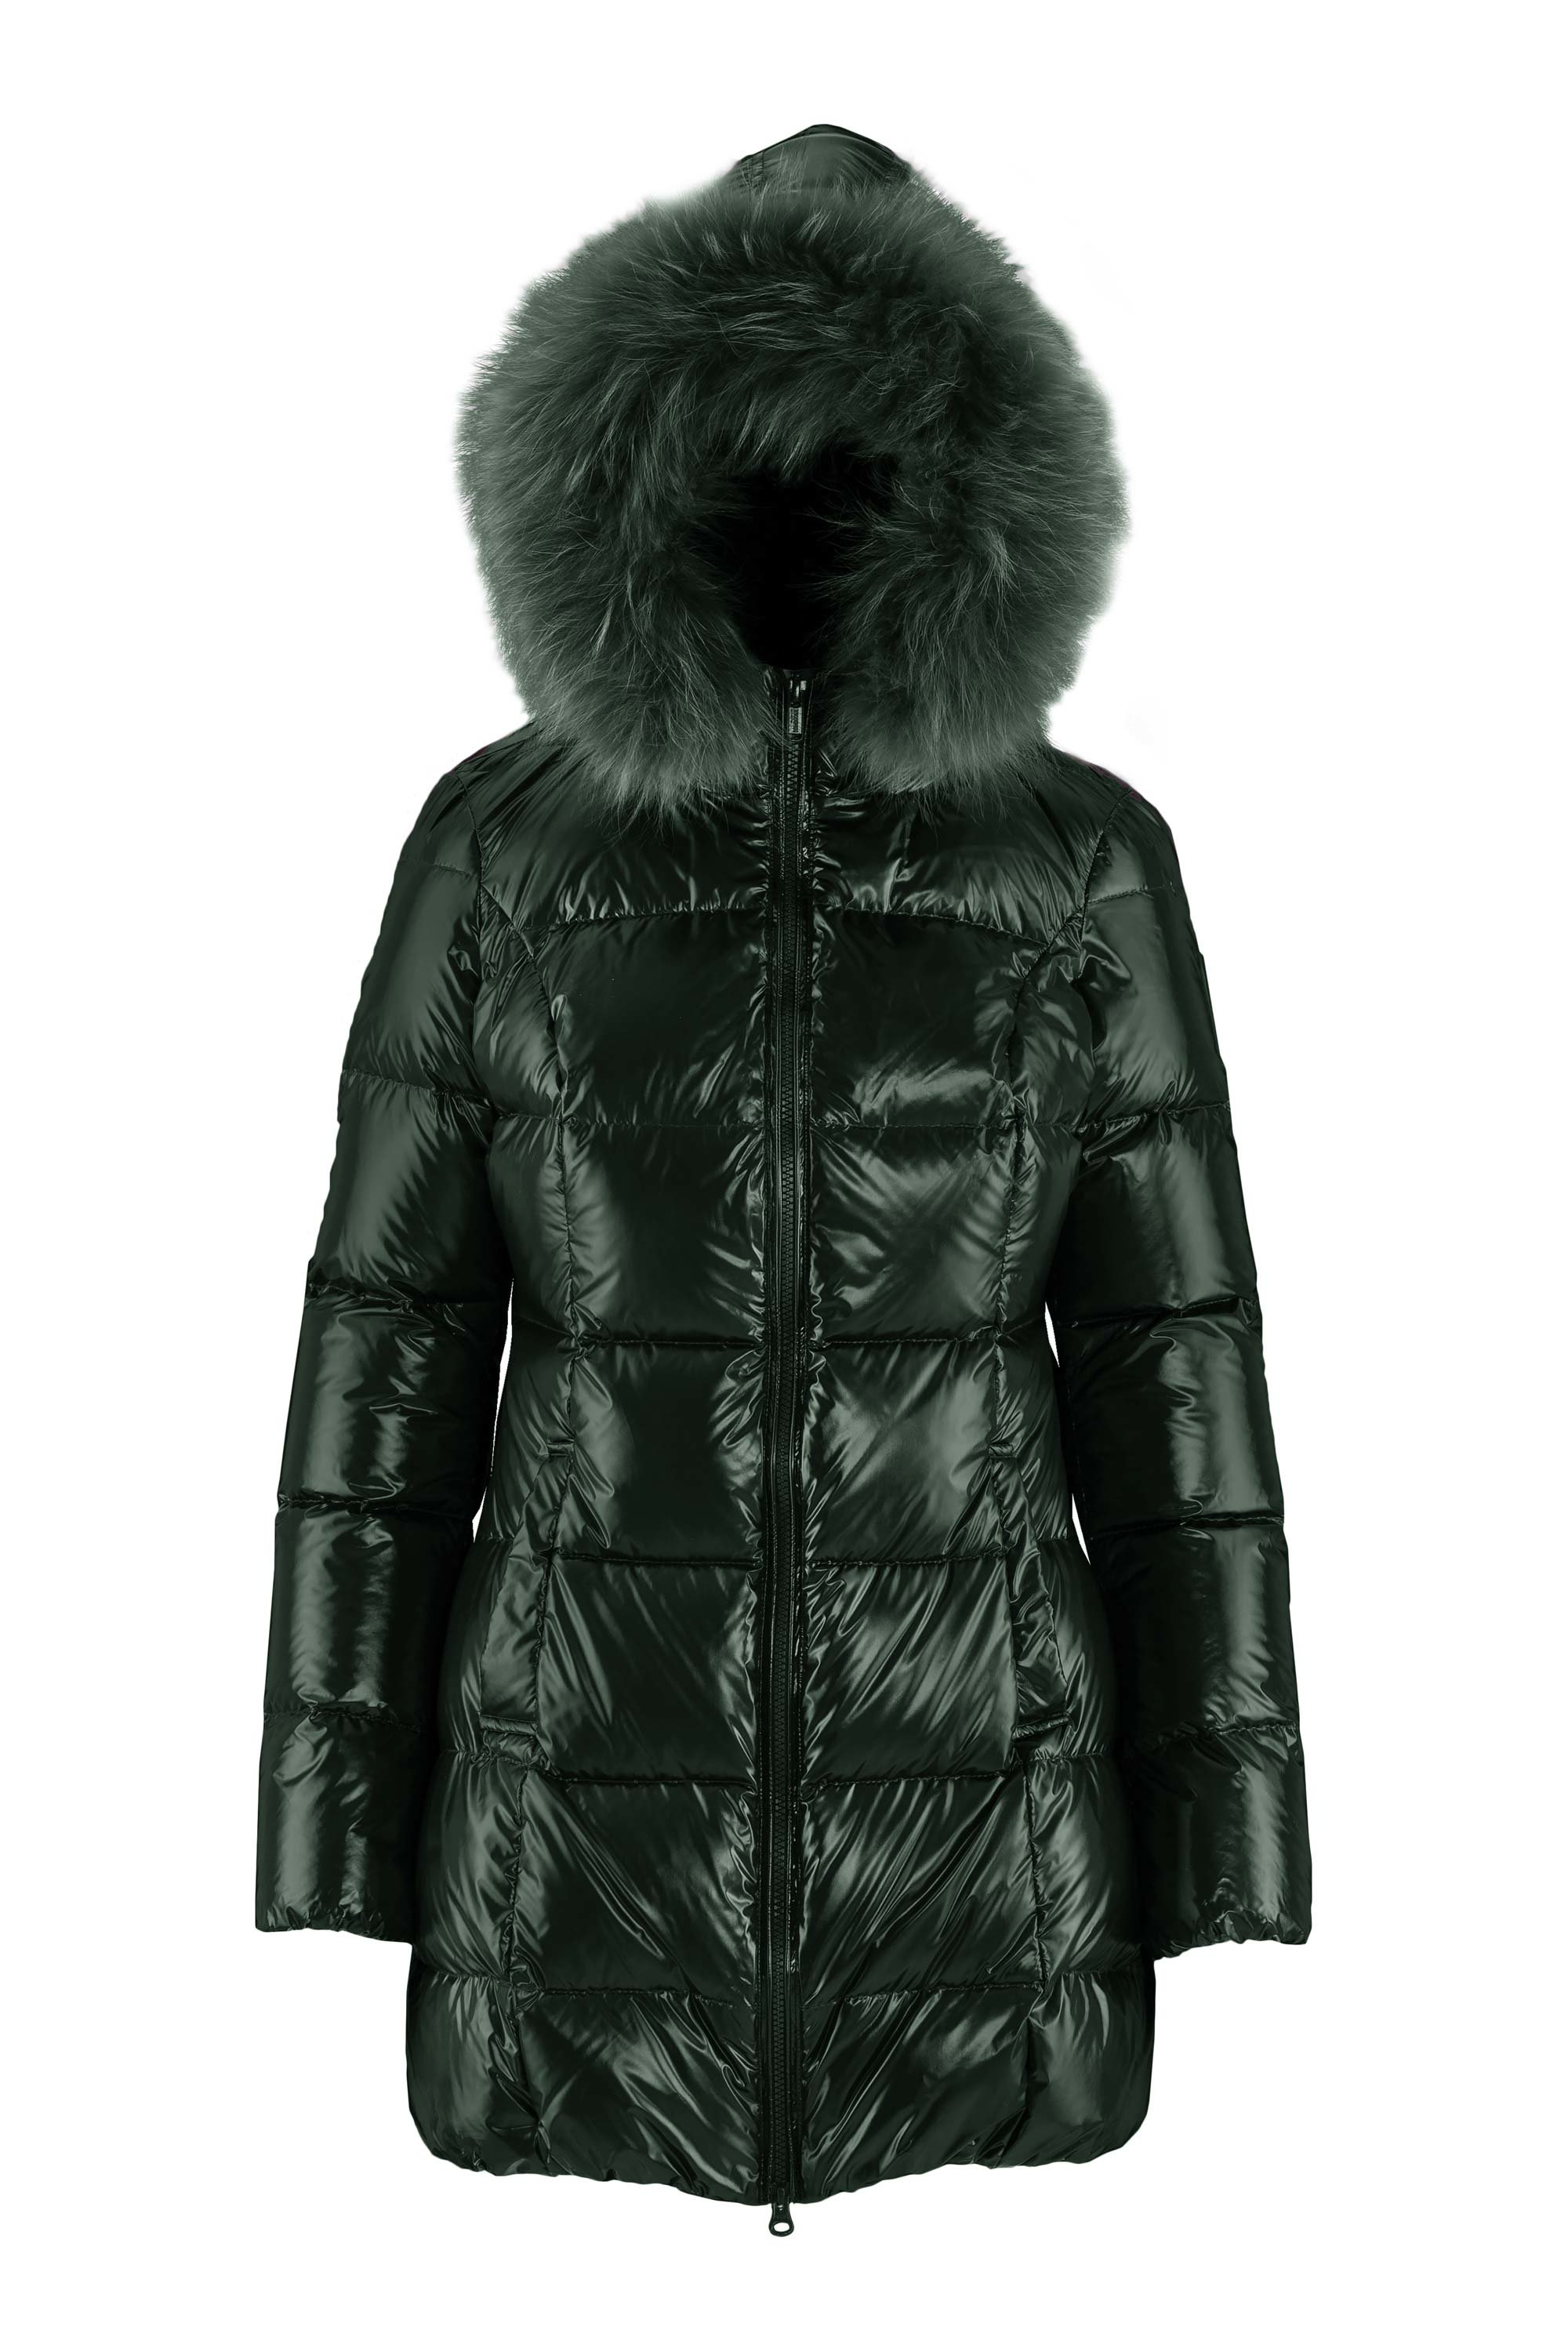 Long laqué down jacket